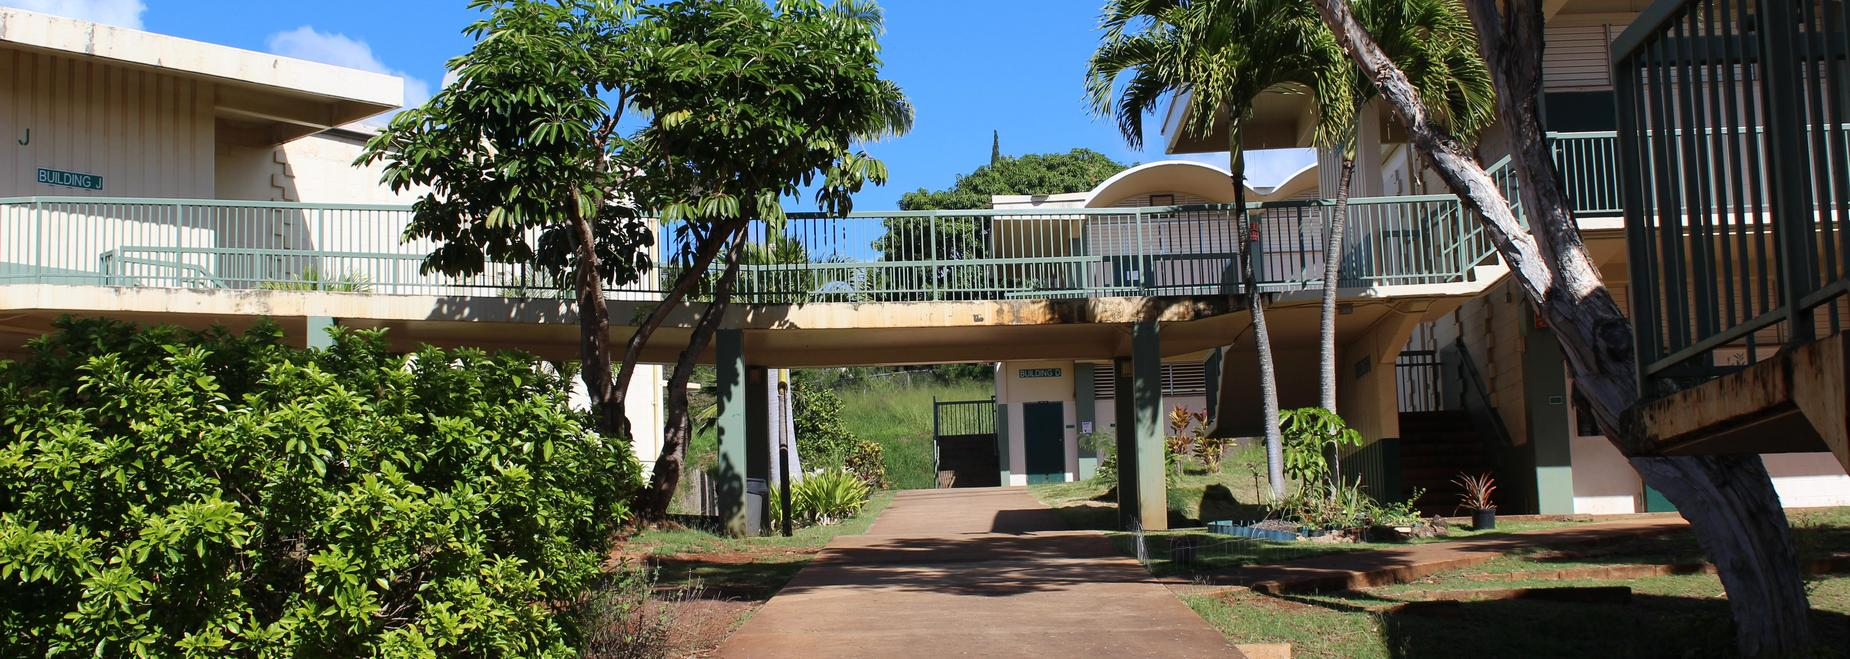 Aiea High School Campus